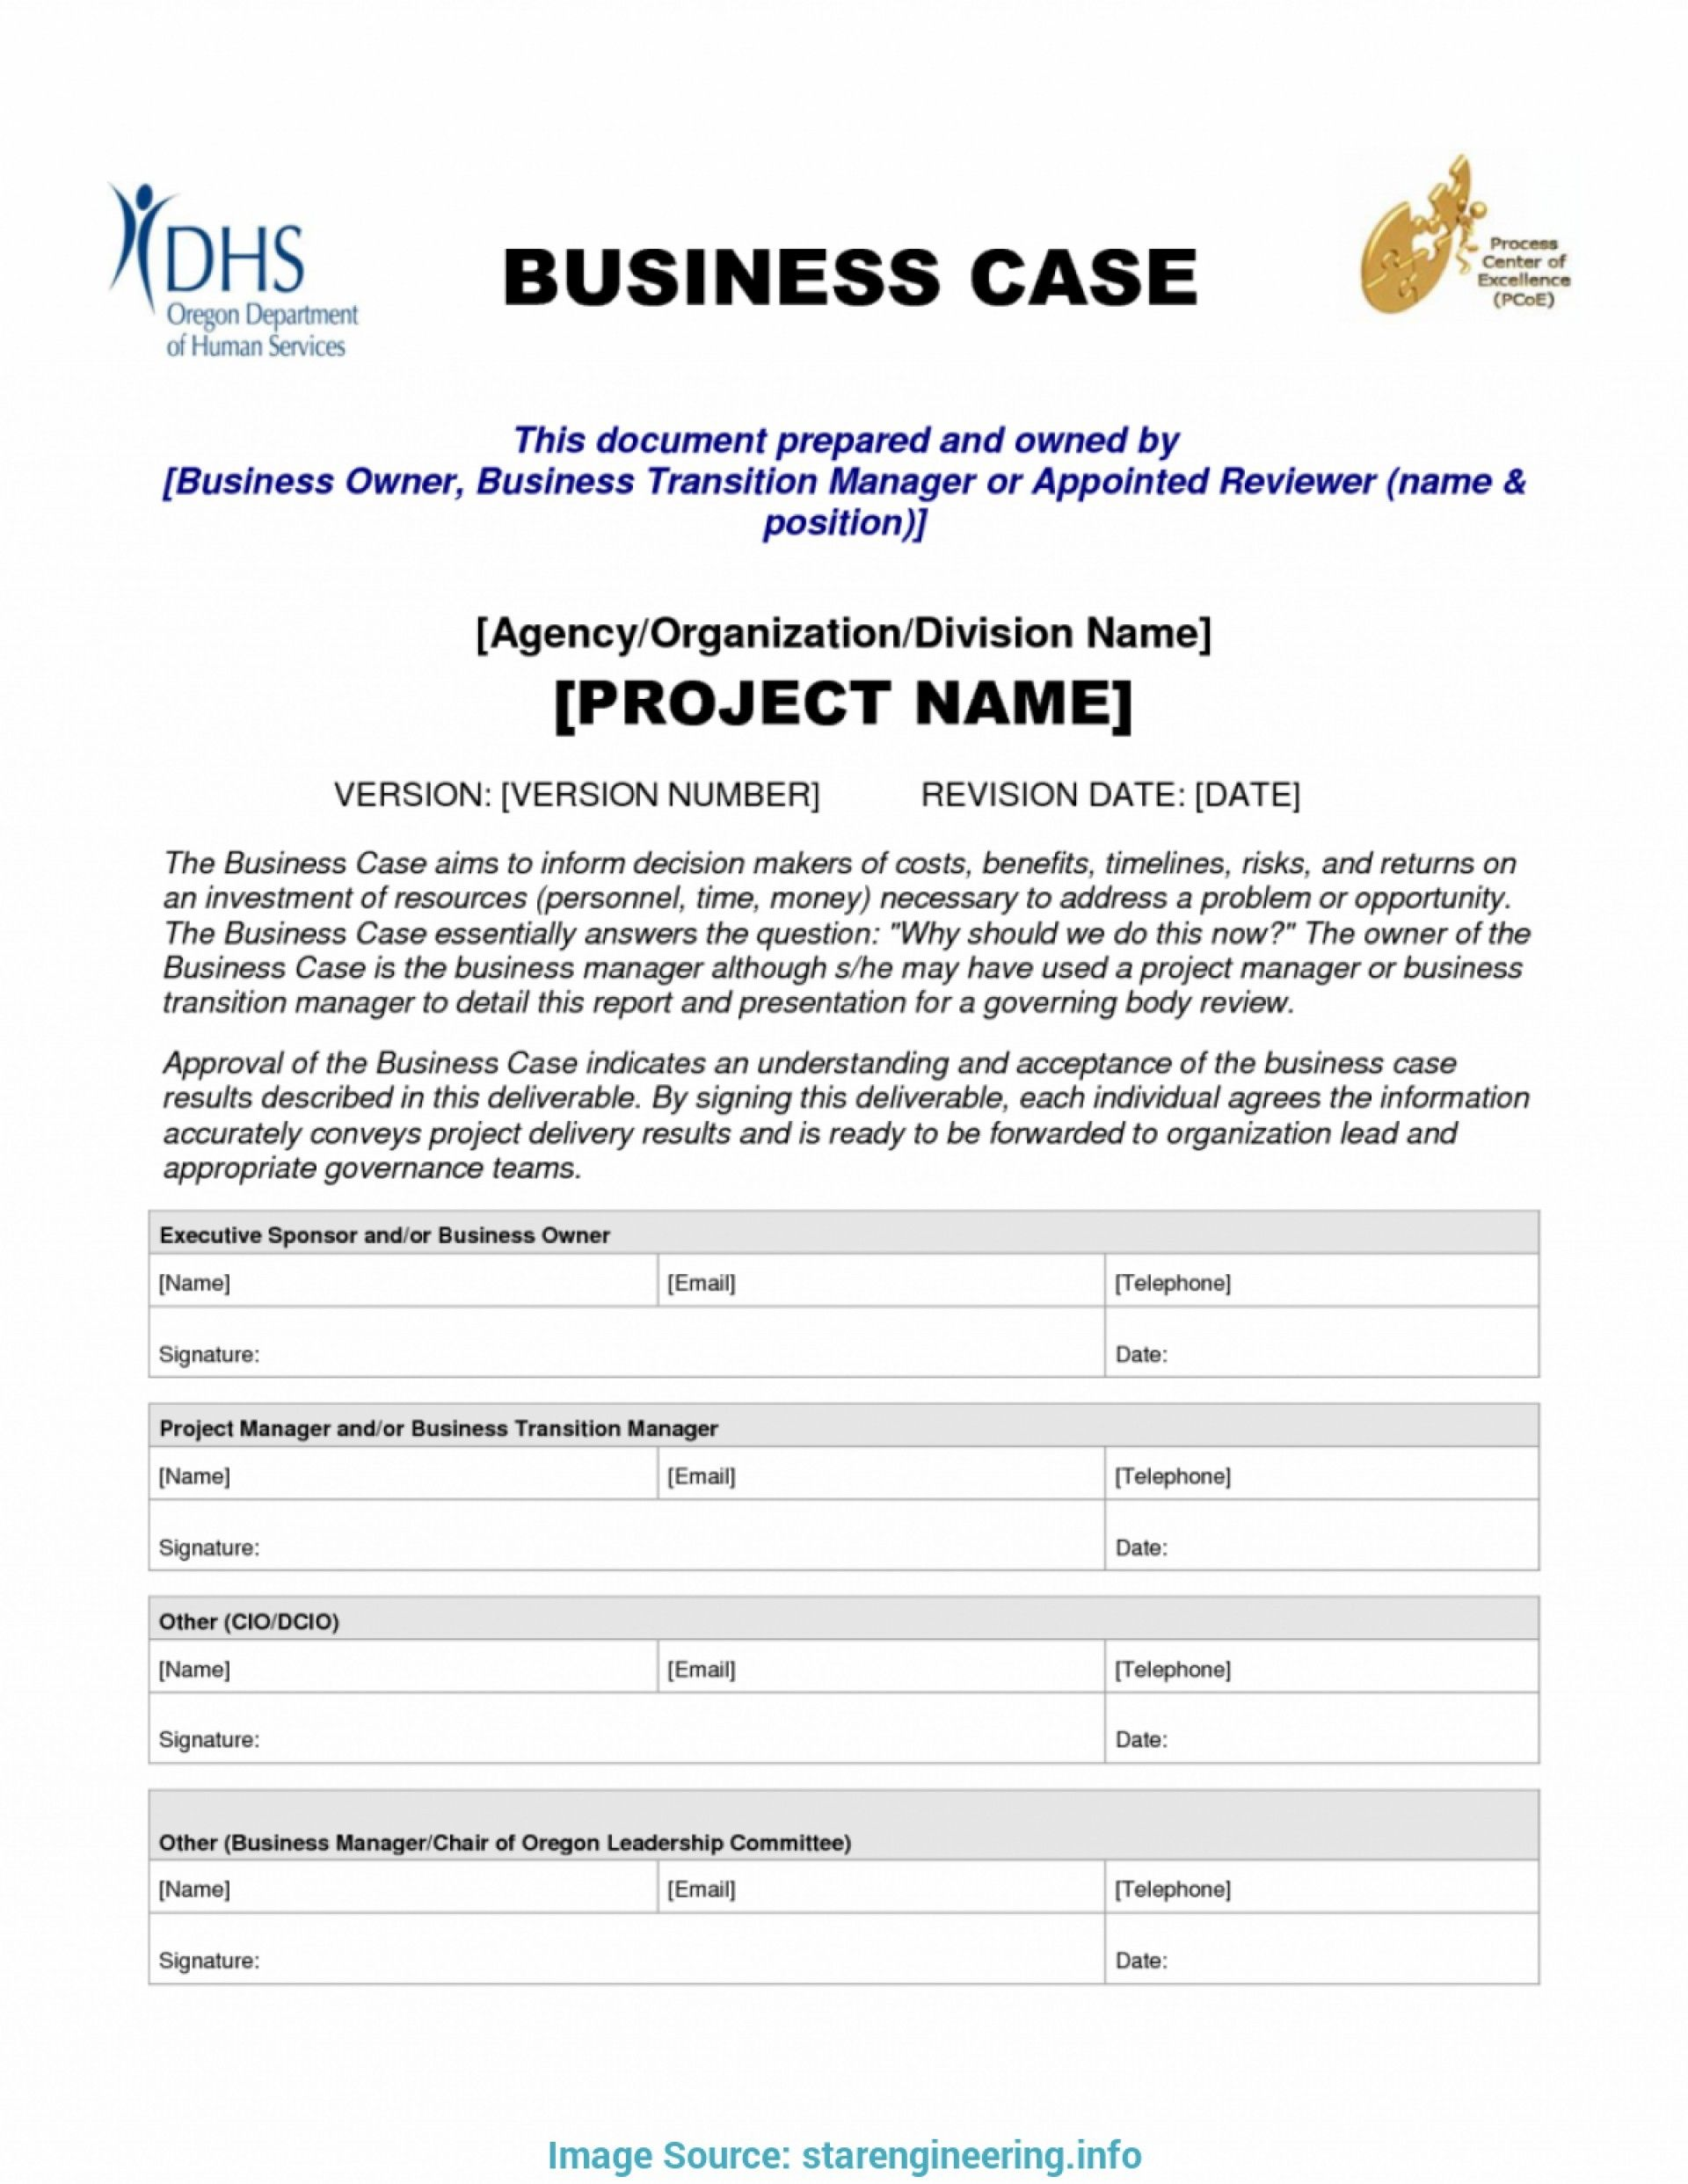 Download New Business Case Template Doc Can Save At New